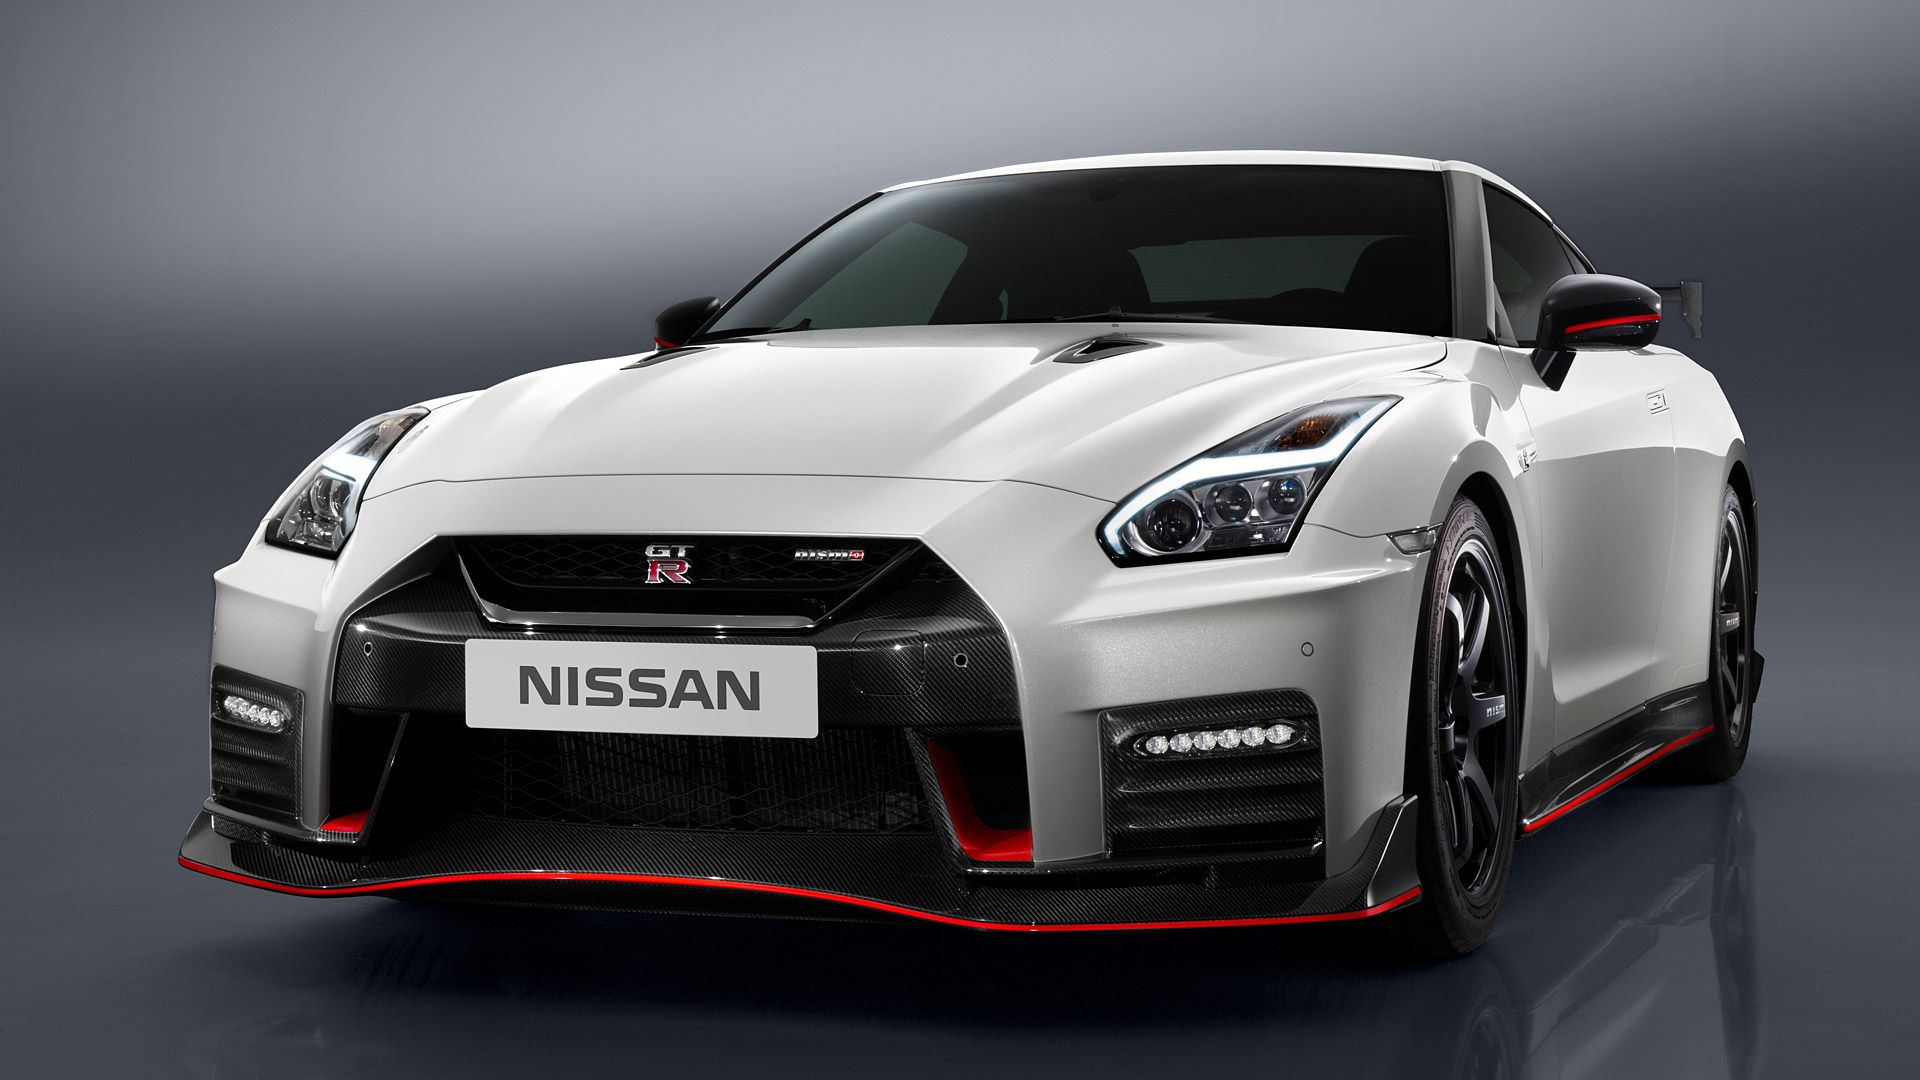 2017 Nissan Gt R Nismo Http Www Wsupercars Com Nissan 2017 Gtr Nismo Php Nissan Gtr Nismo Nissan Gtr R35 Gtr Nismo